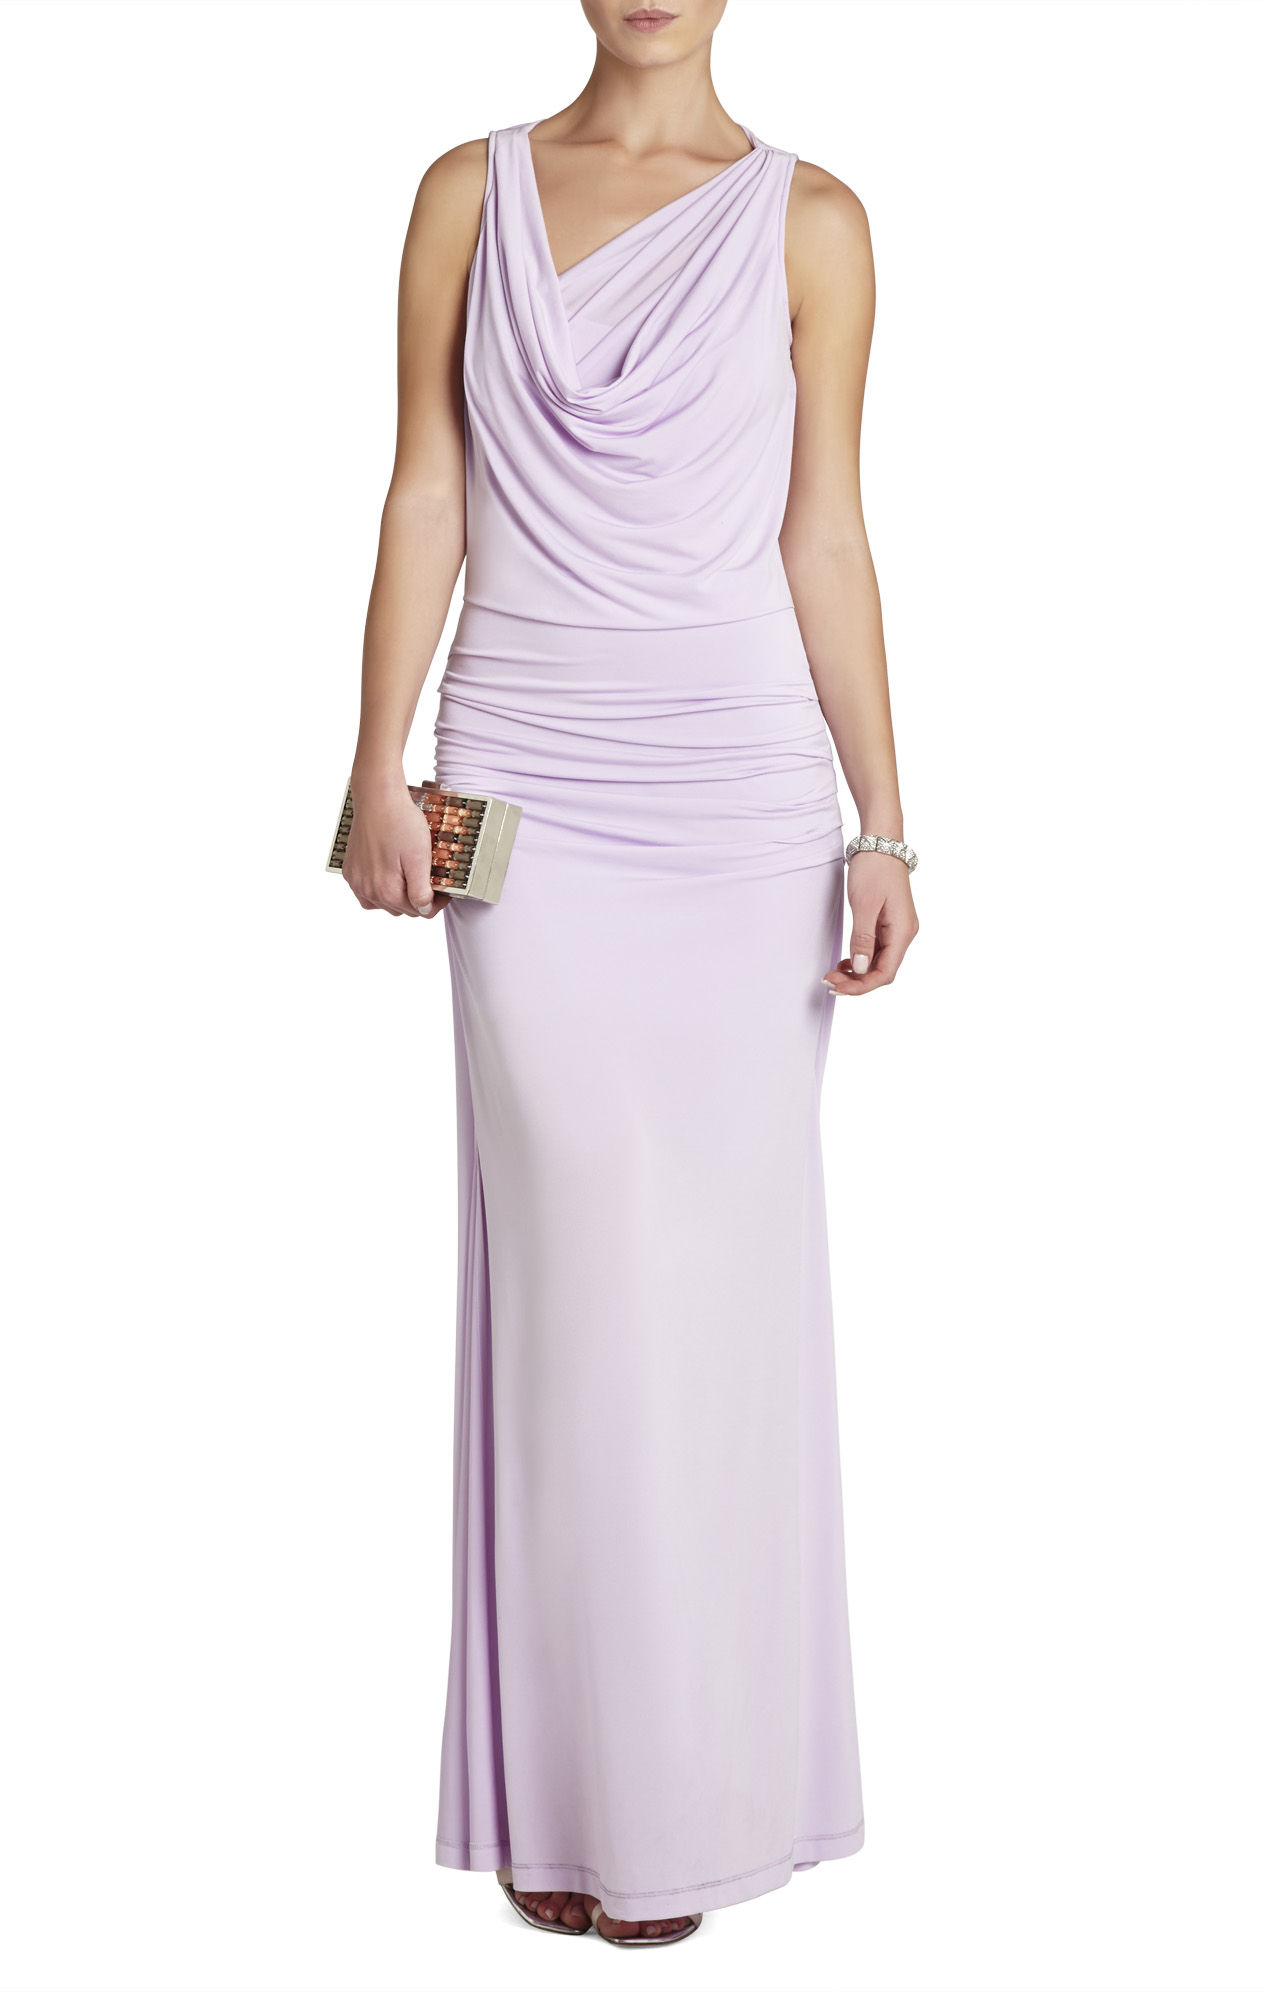 Lyst bcbgmaxazria nicole draped neck floor length dress for Floor length dress